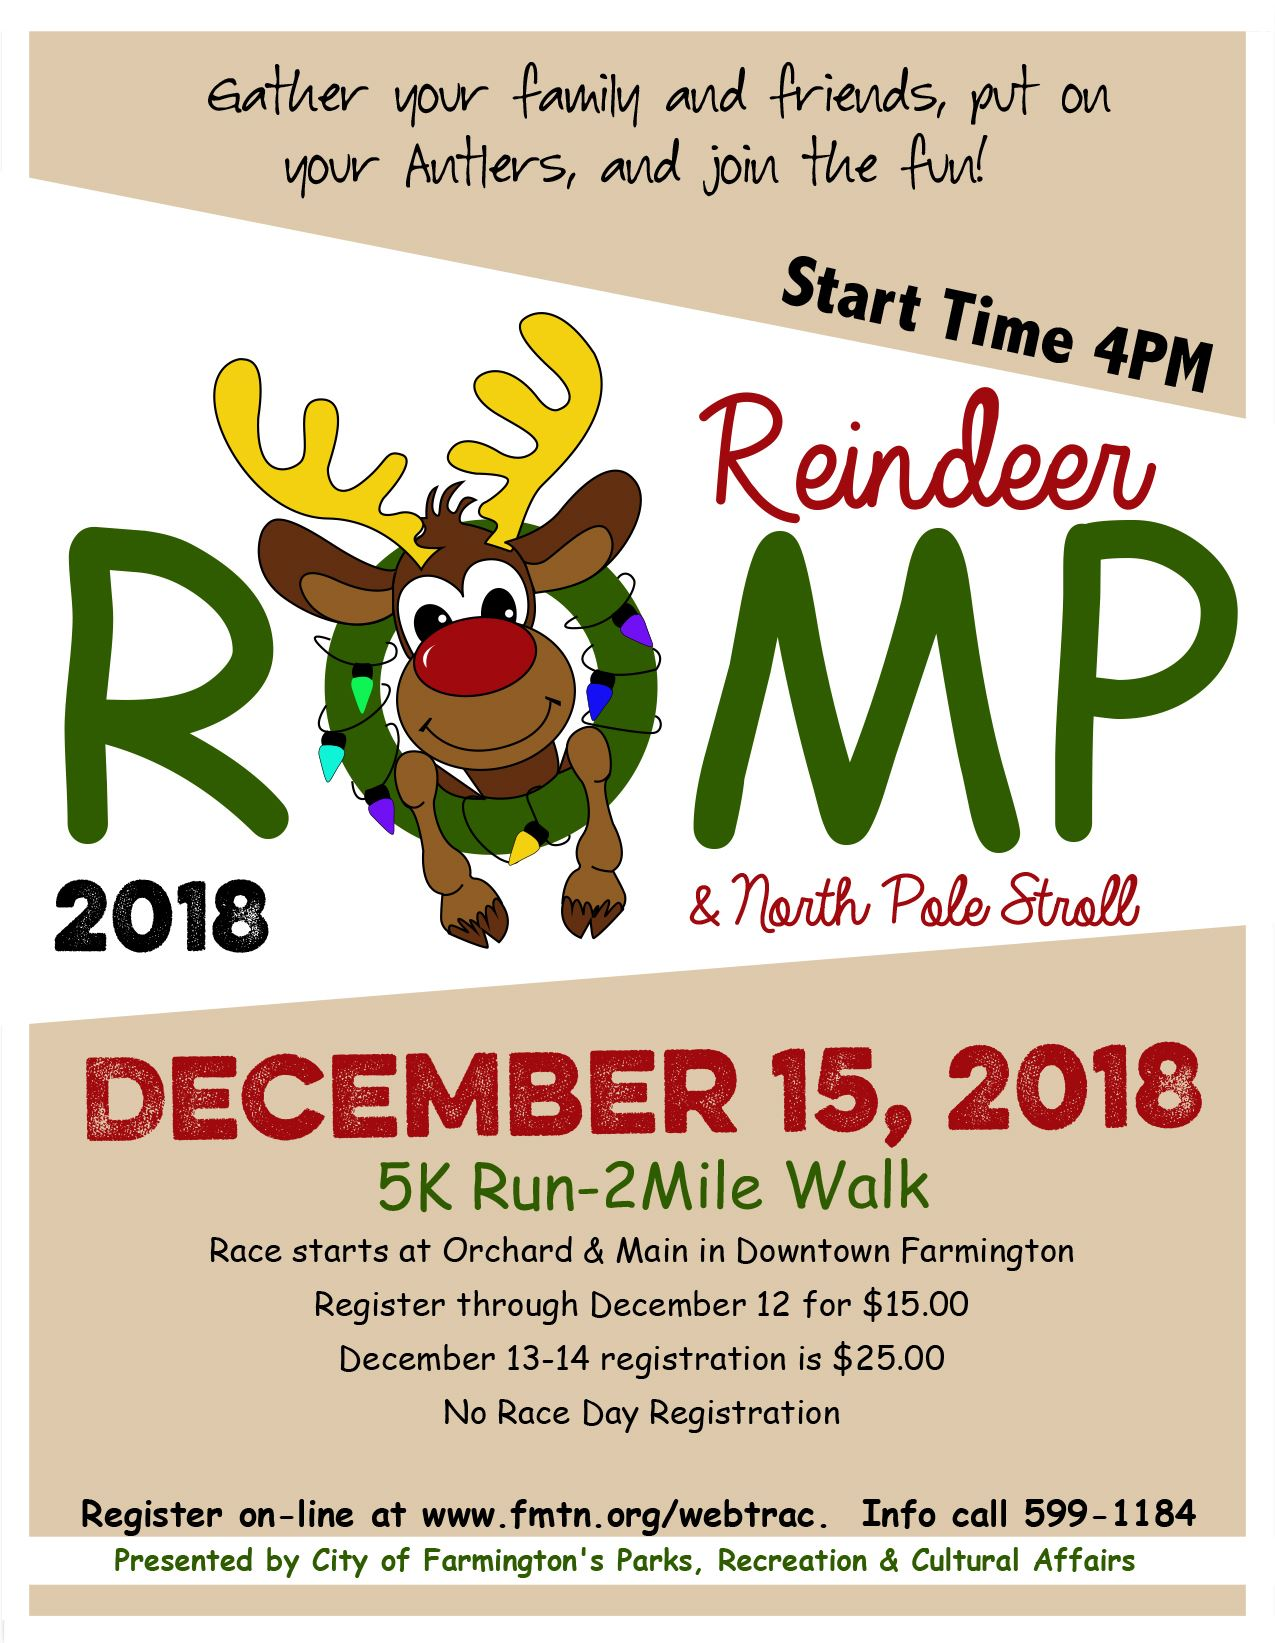 Reindeer Romp & North Pole Stroll